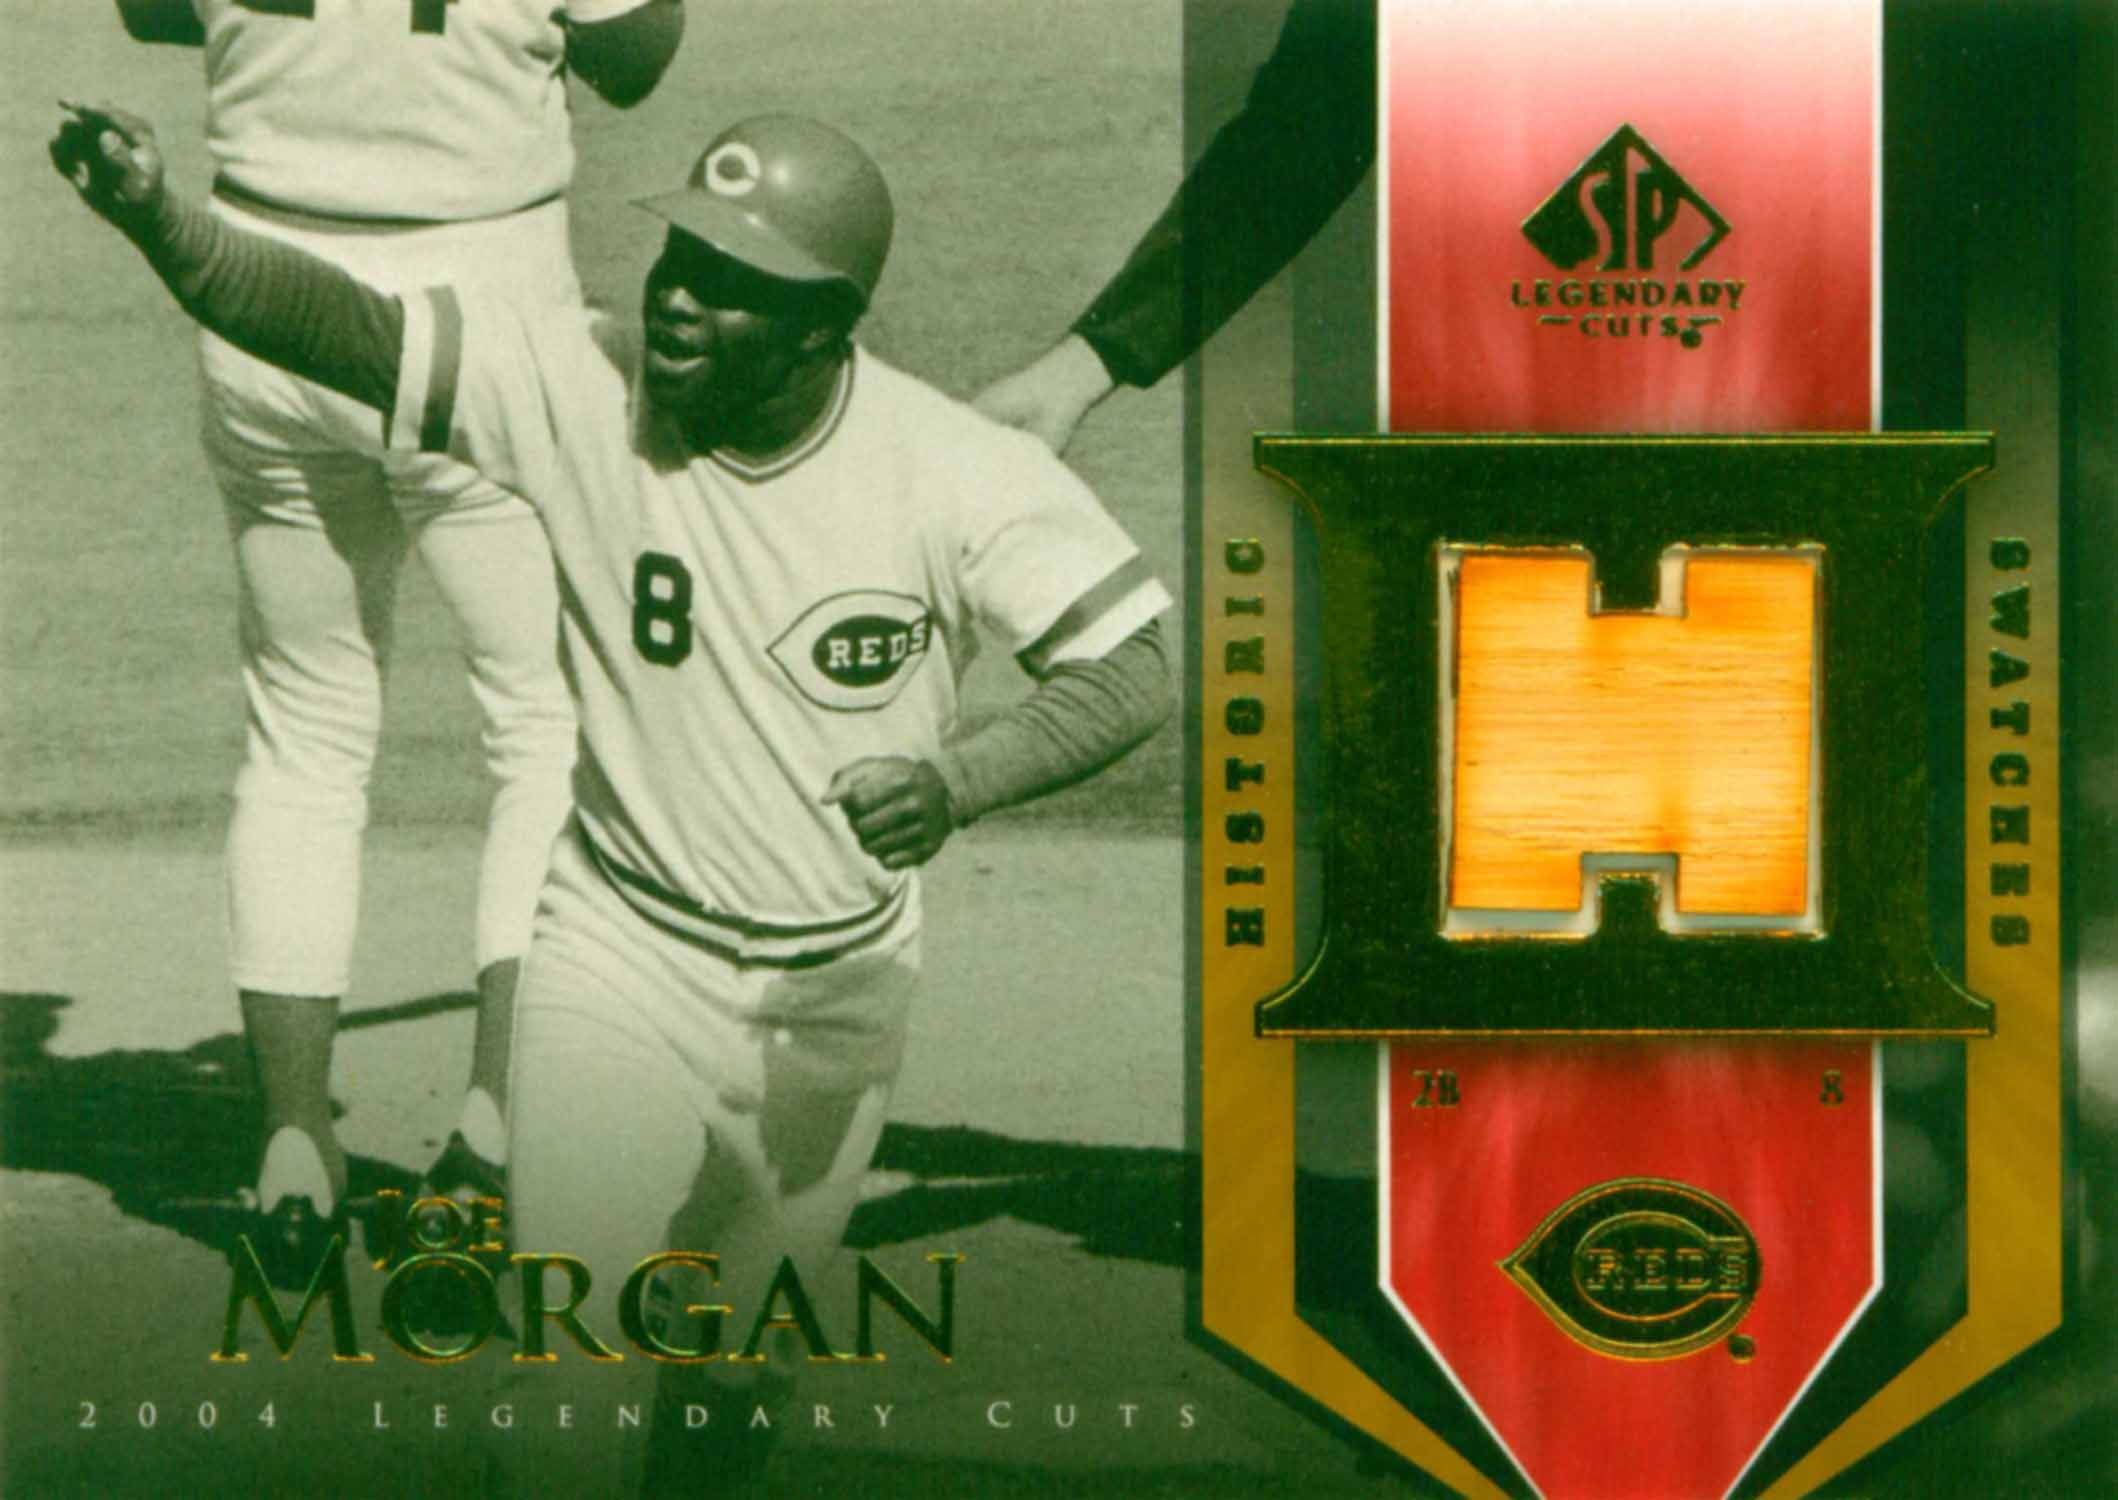 2004 SP Legendary Cuts Historic Swatches Bat